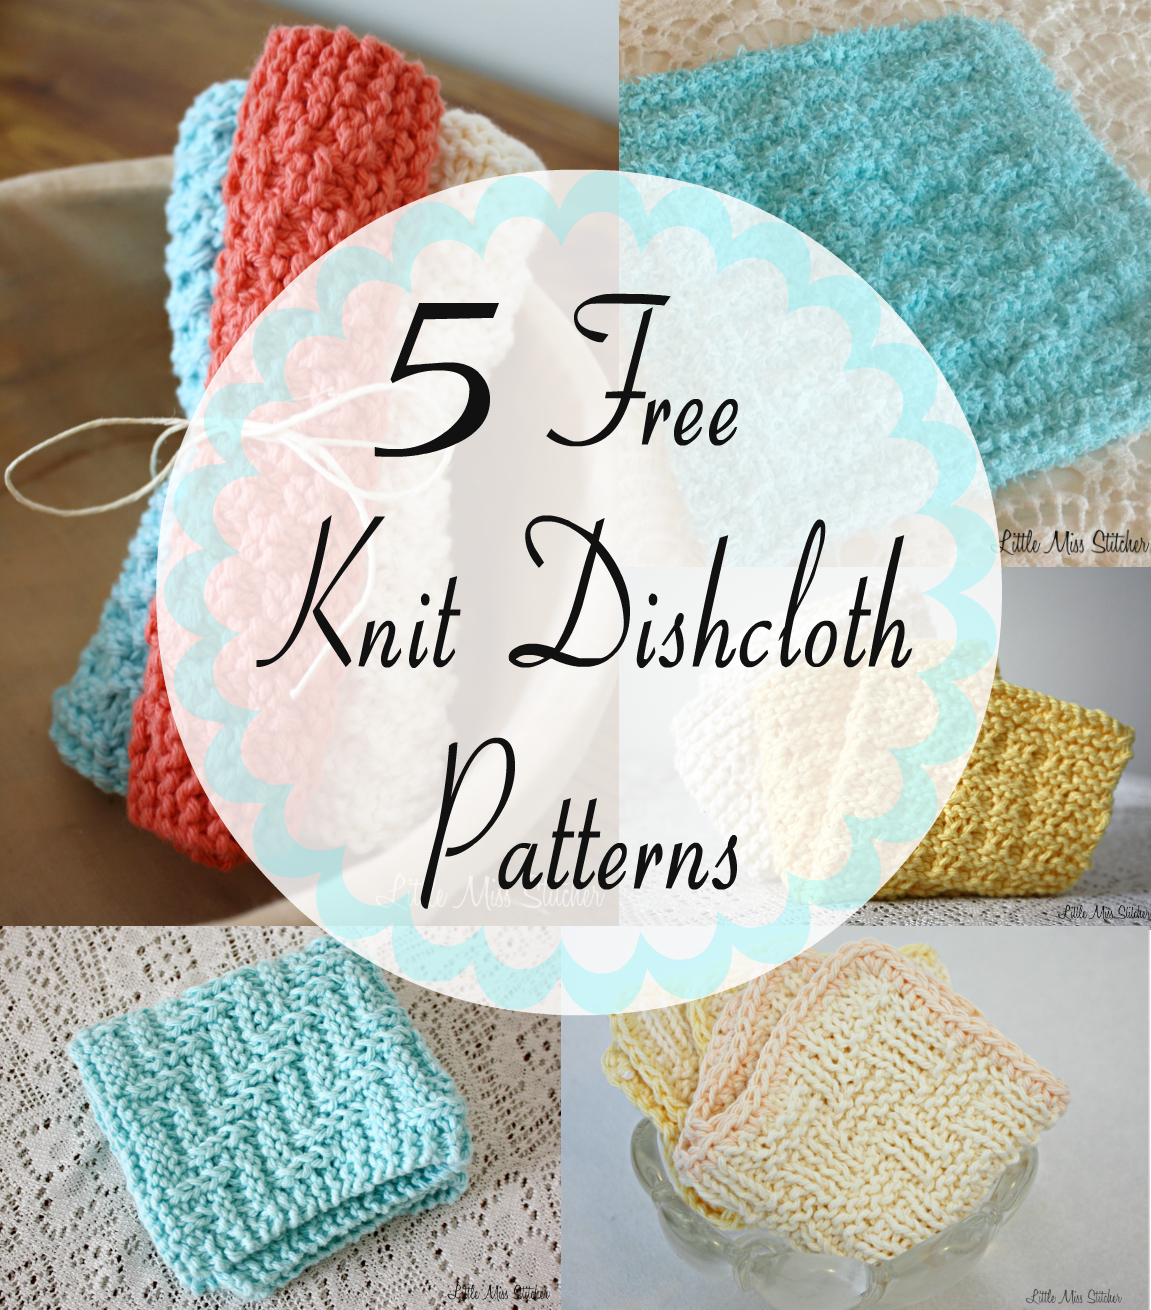 Free Knitted Dishcloth Pattern Little Miss Stitcher 5 Free Knit Dishcloth Patterns